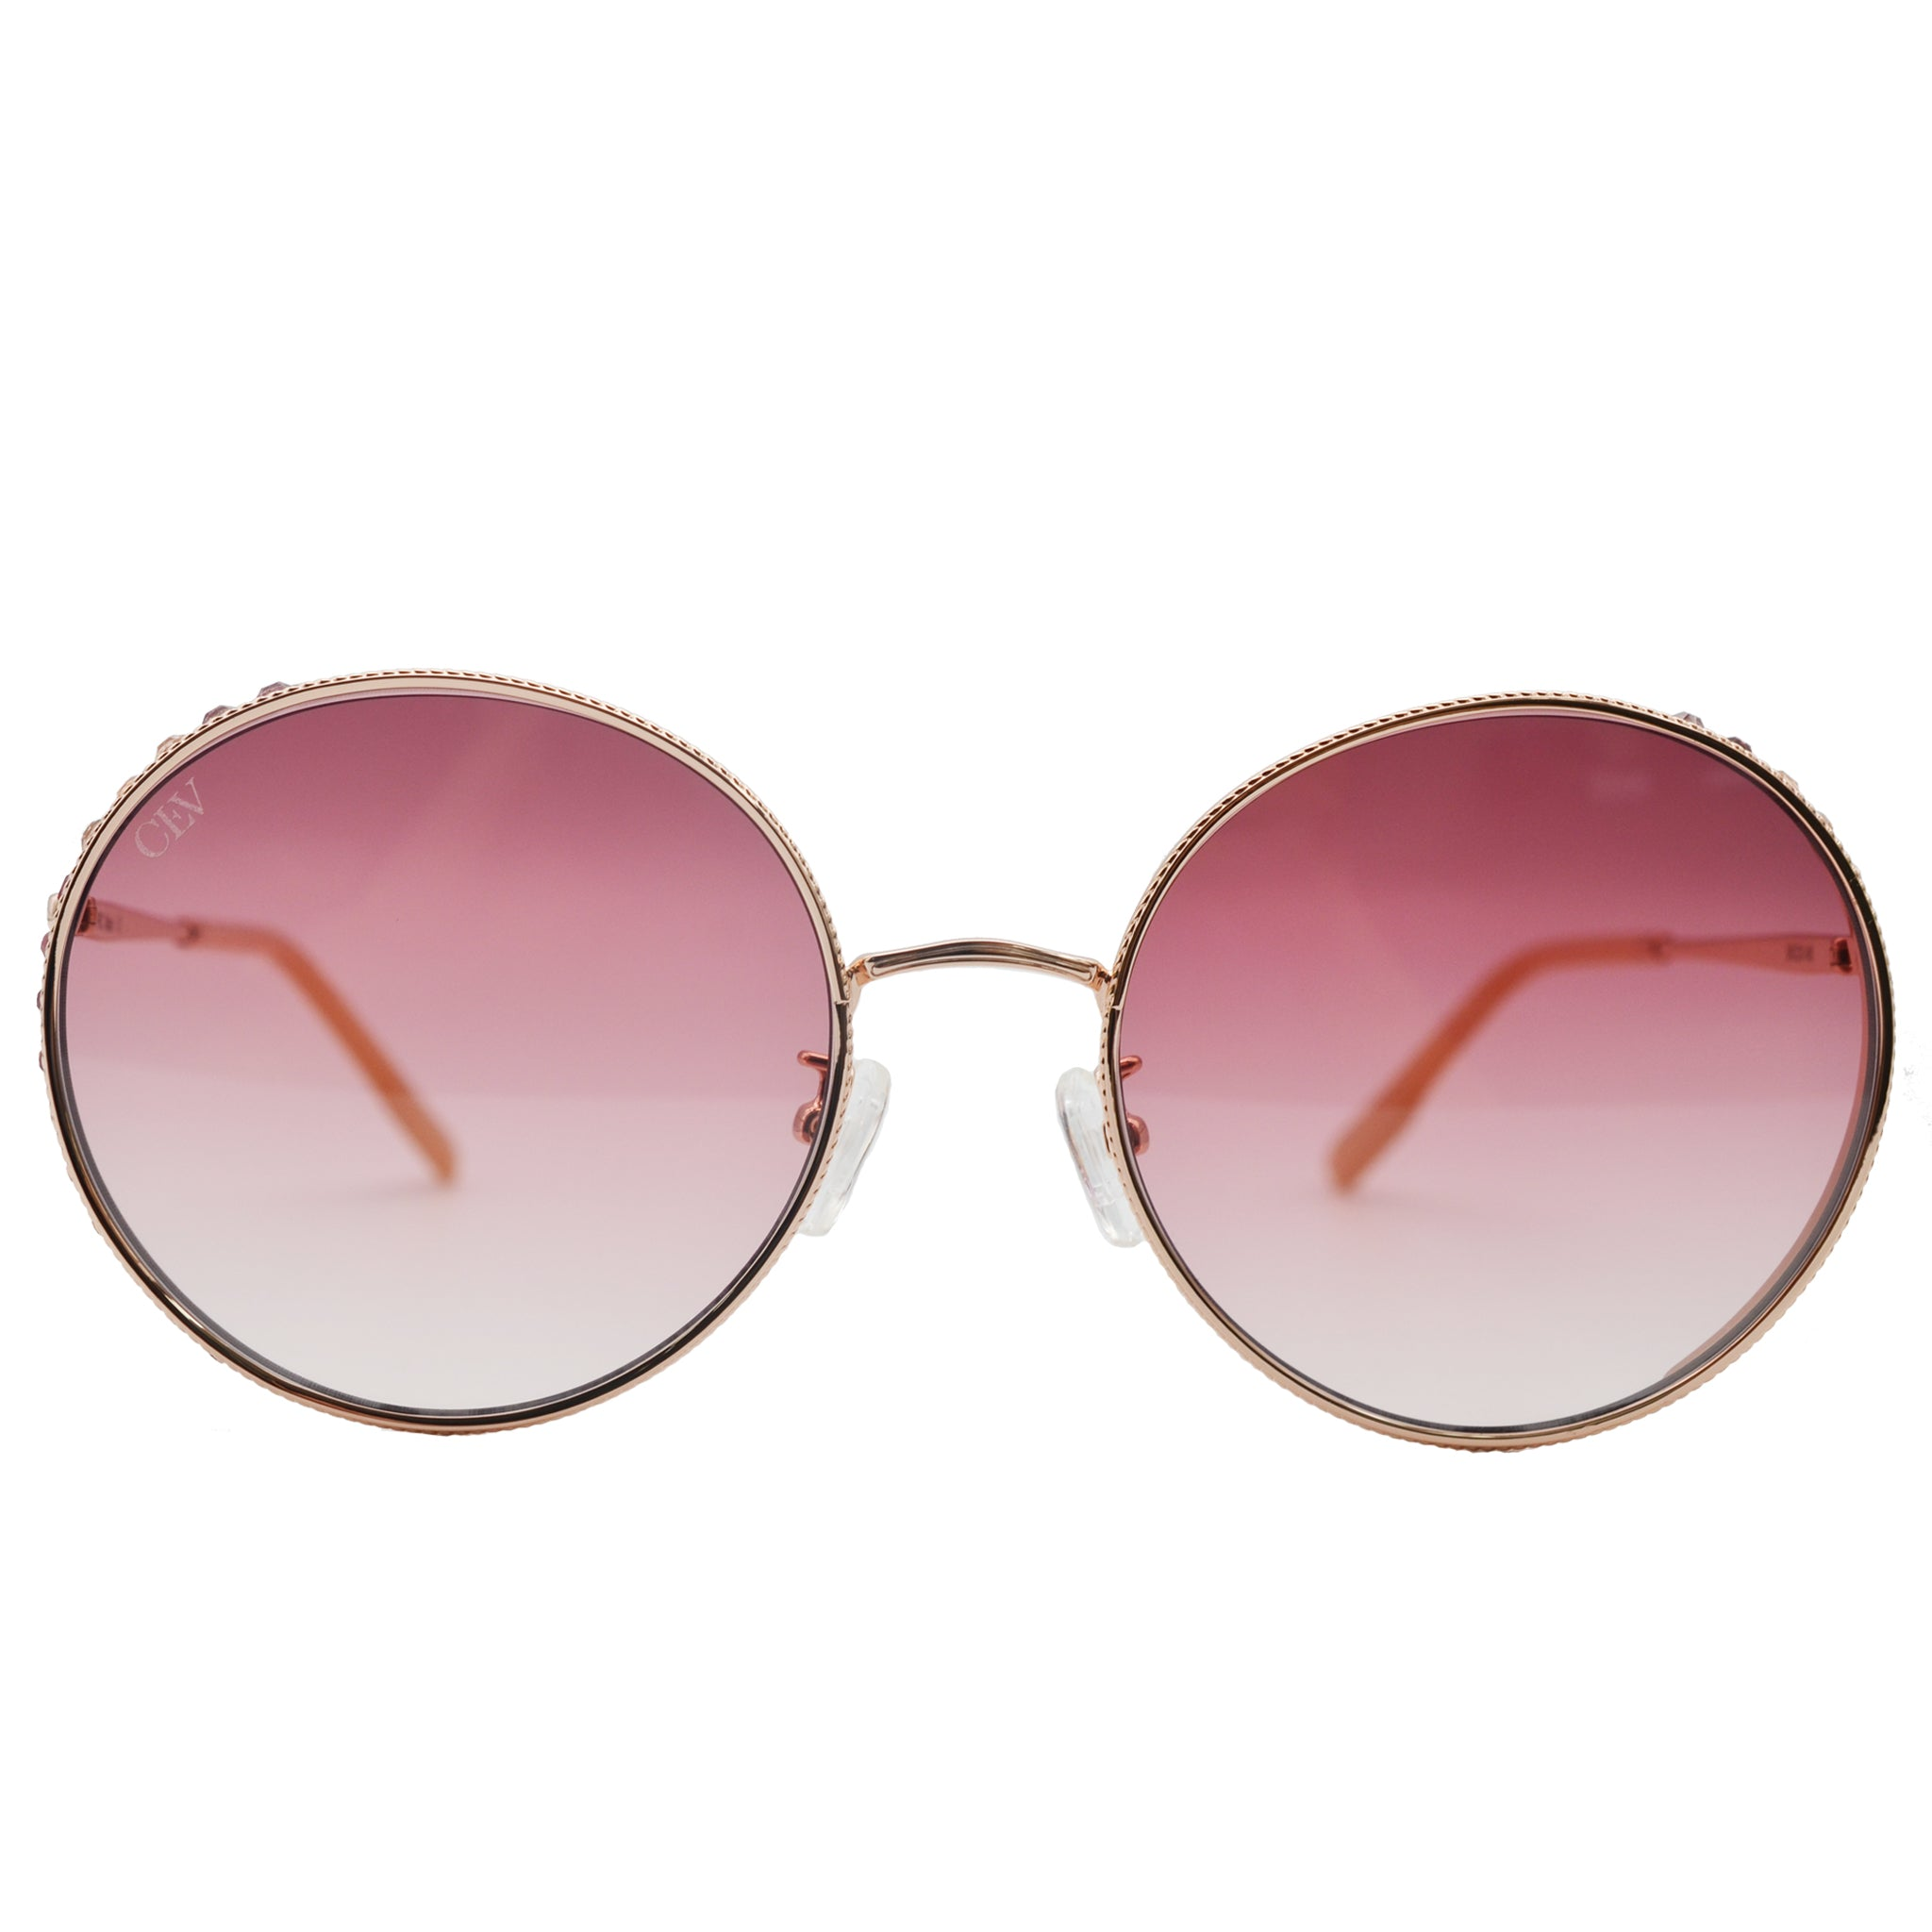 Marshall Pink sunglasses, cevcollection